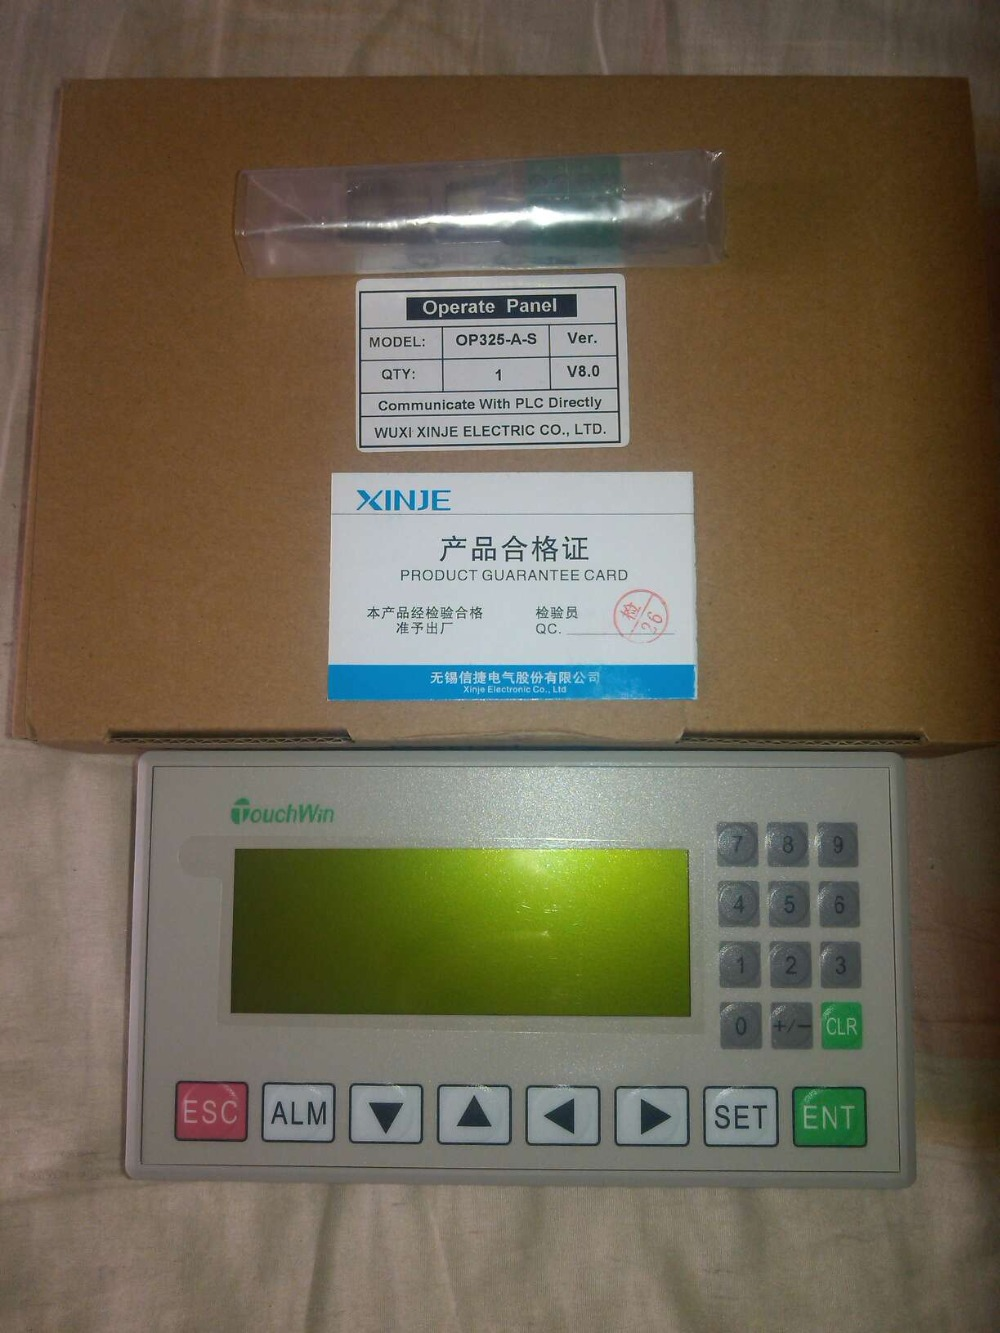 OP325-A-S XINJE Touchwin Operate Panel STN LCD single color 20 keys new in box dhl ems 2 lots lm64c35p sh stn 10 4 640 480 lcd panel e2